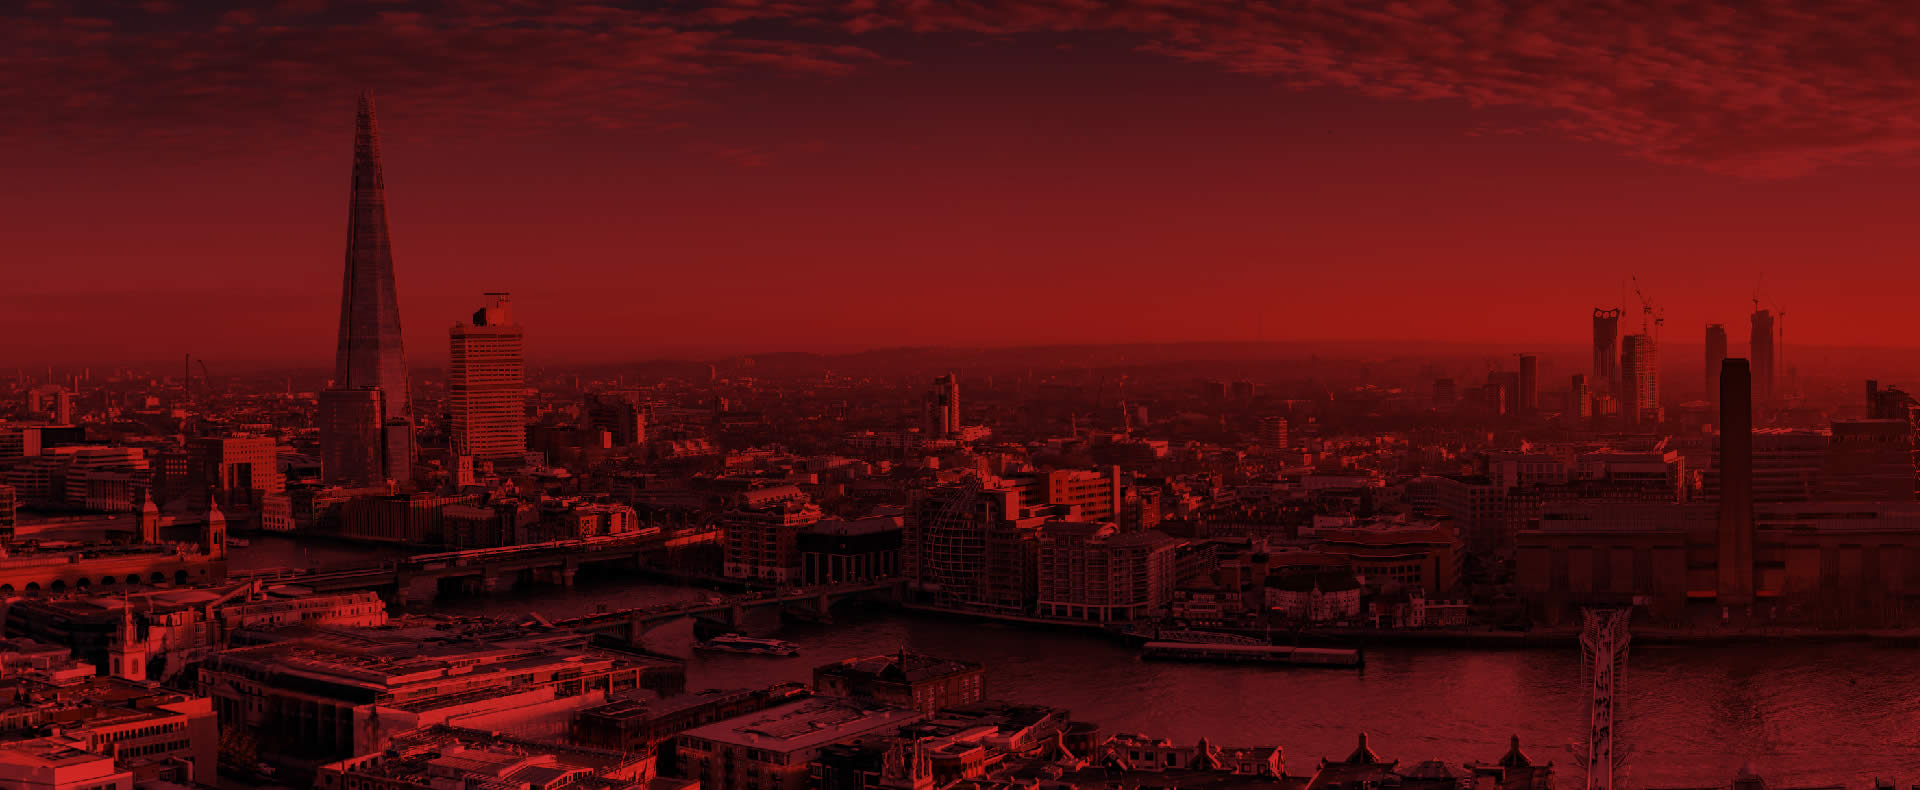 Pomegranate Consulting - Footer Image of London